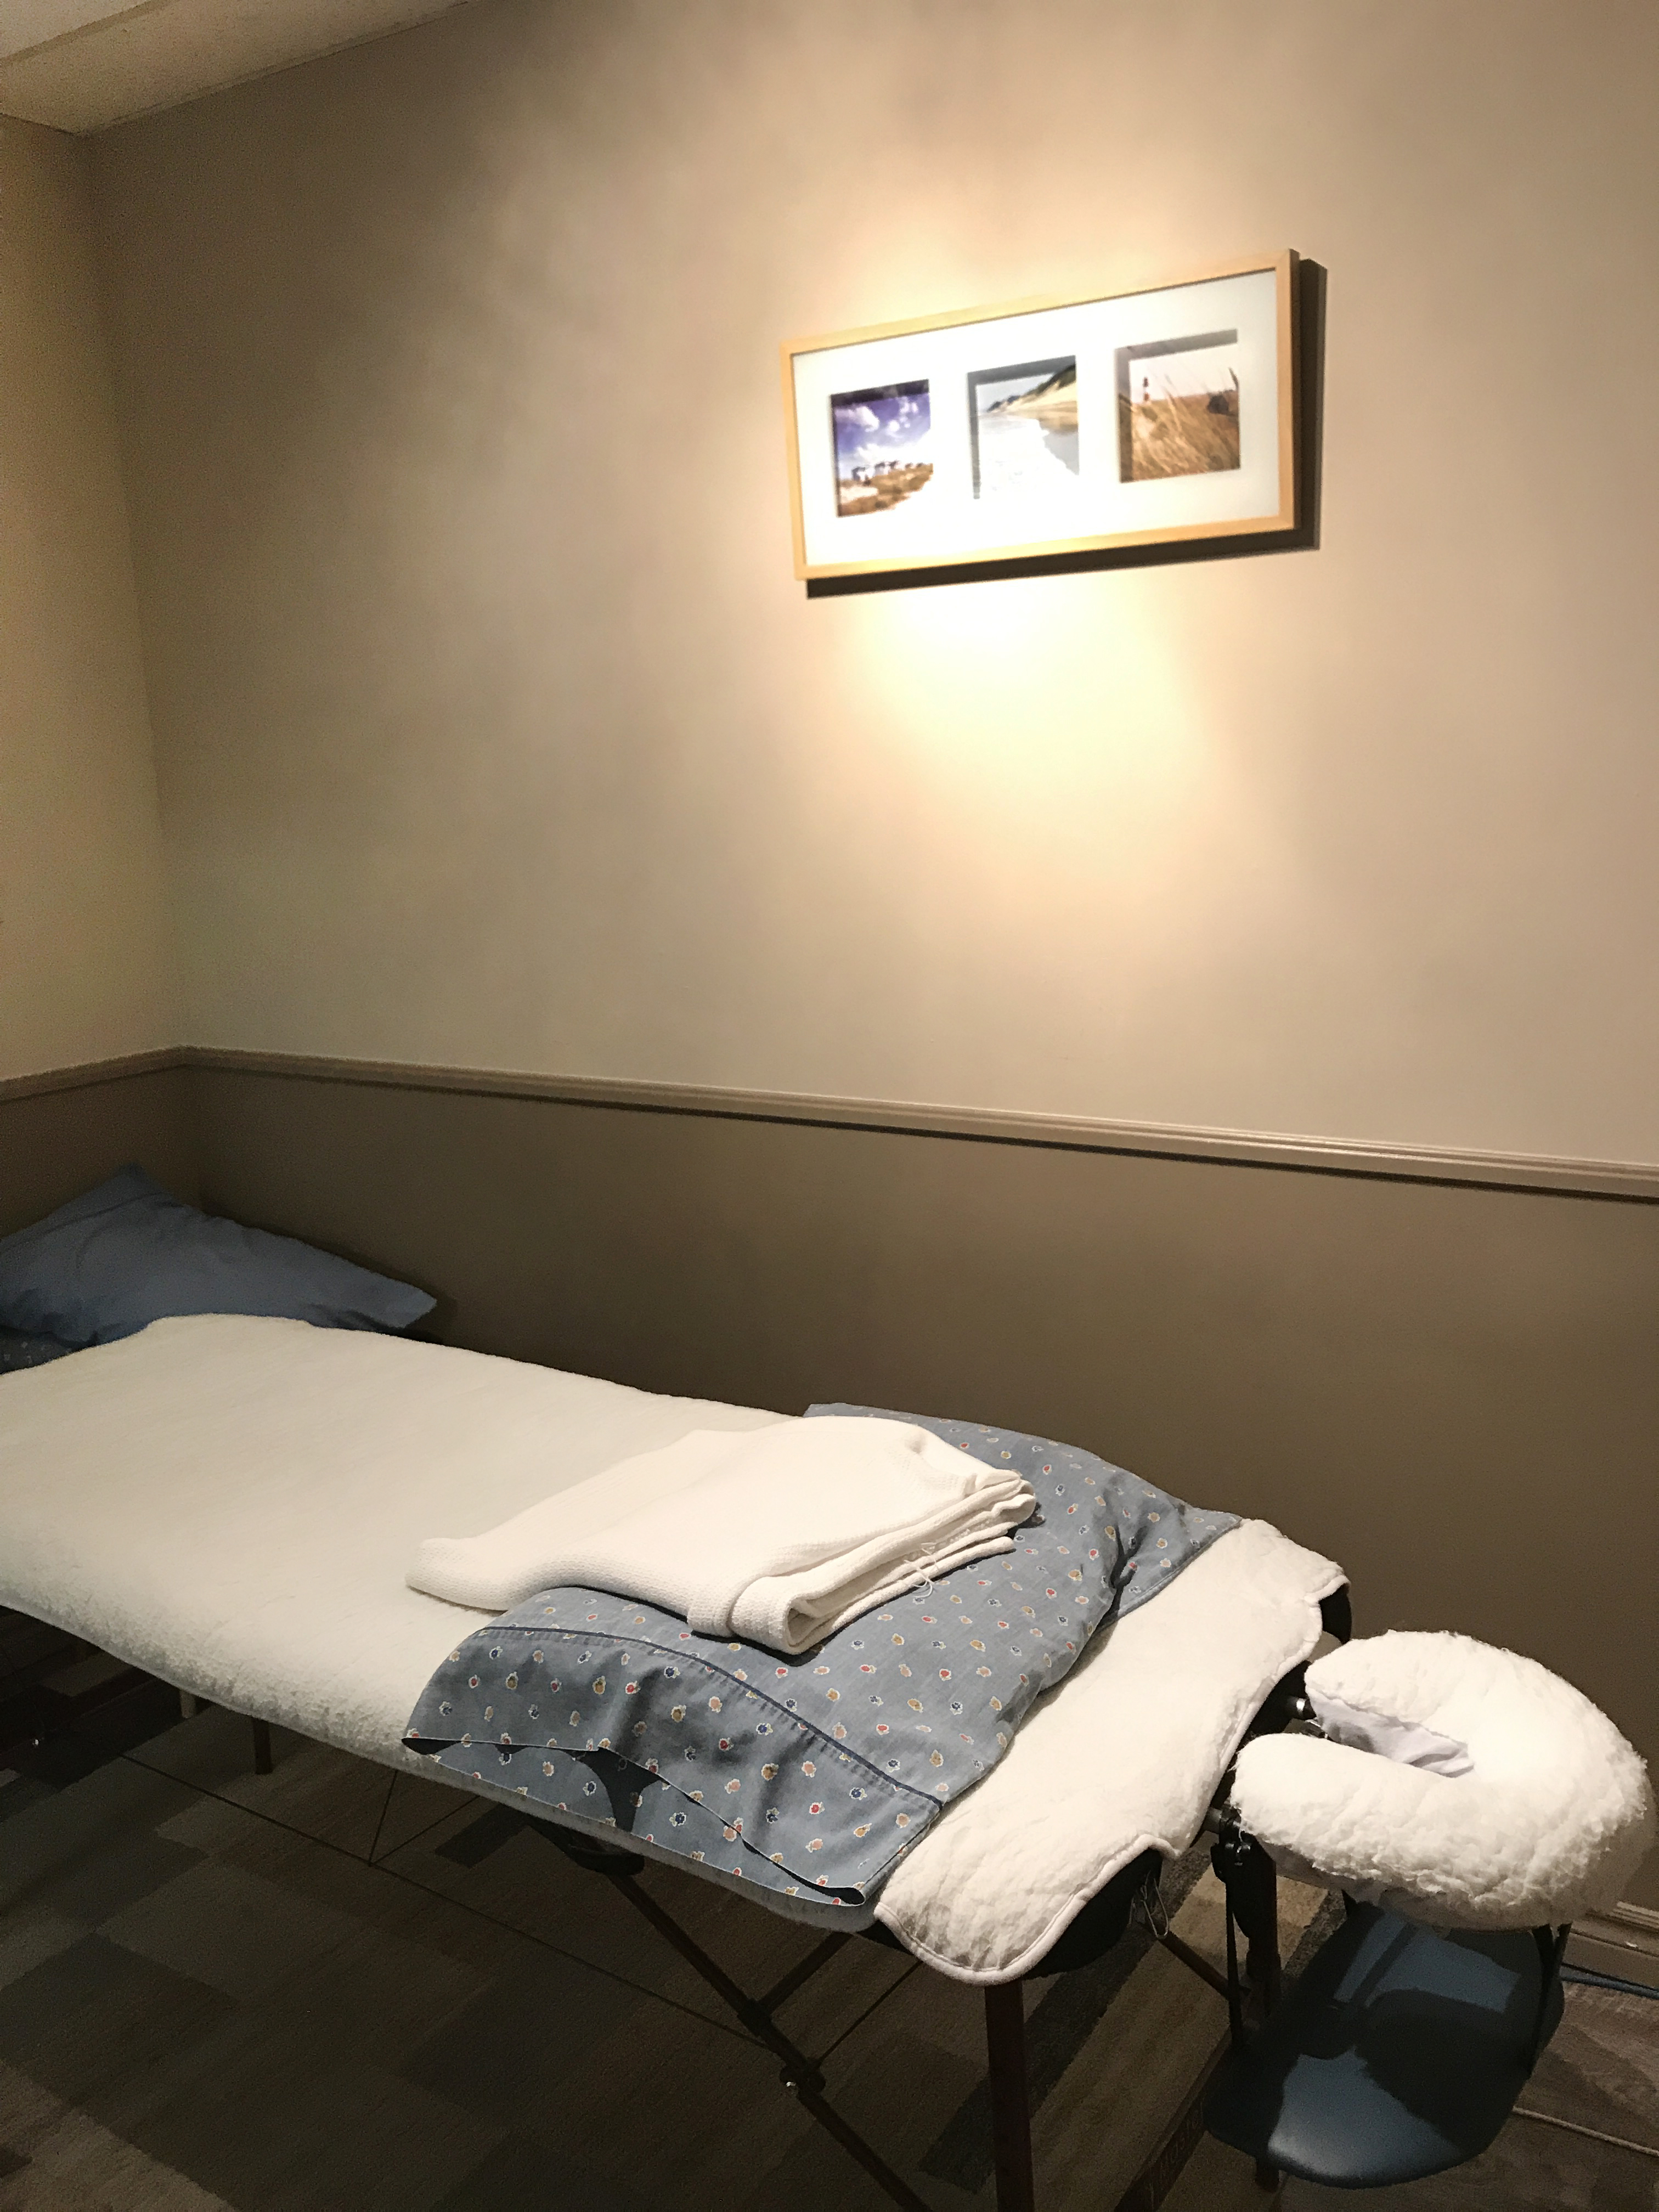 Massage therapy private room at Mountain physiotherapy